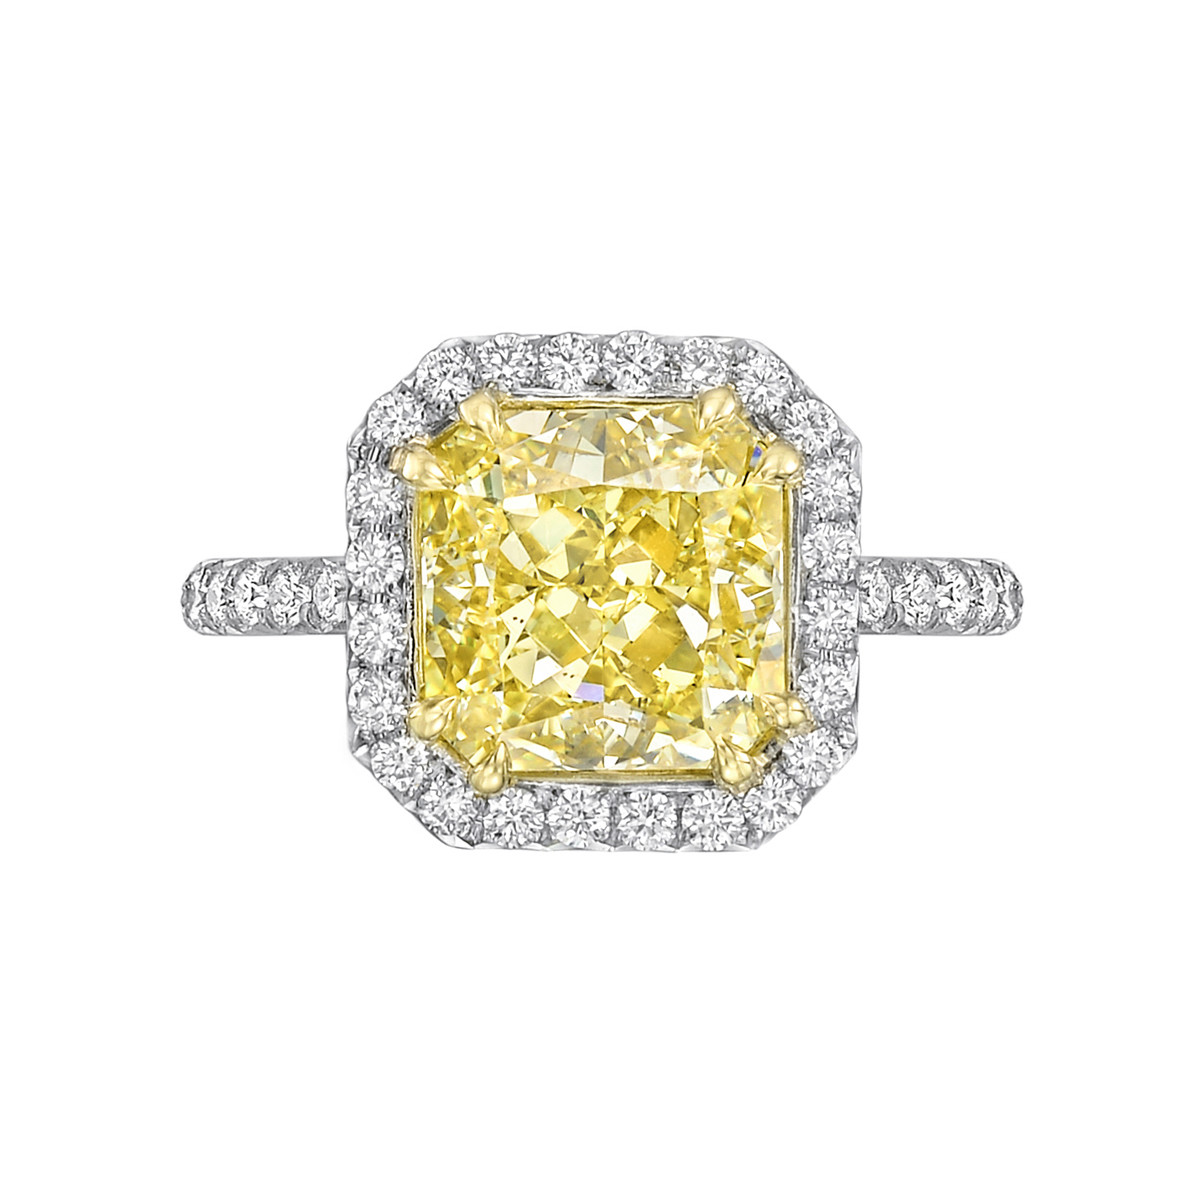 "4.01 Carat Fancy Intense Yellow Diamond ""Oriana"" Ring"